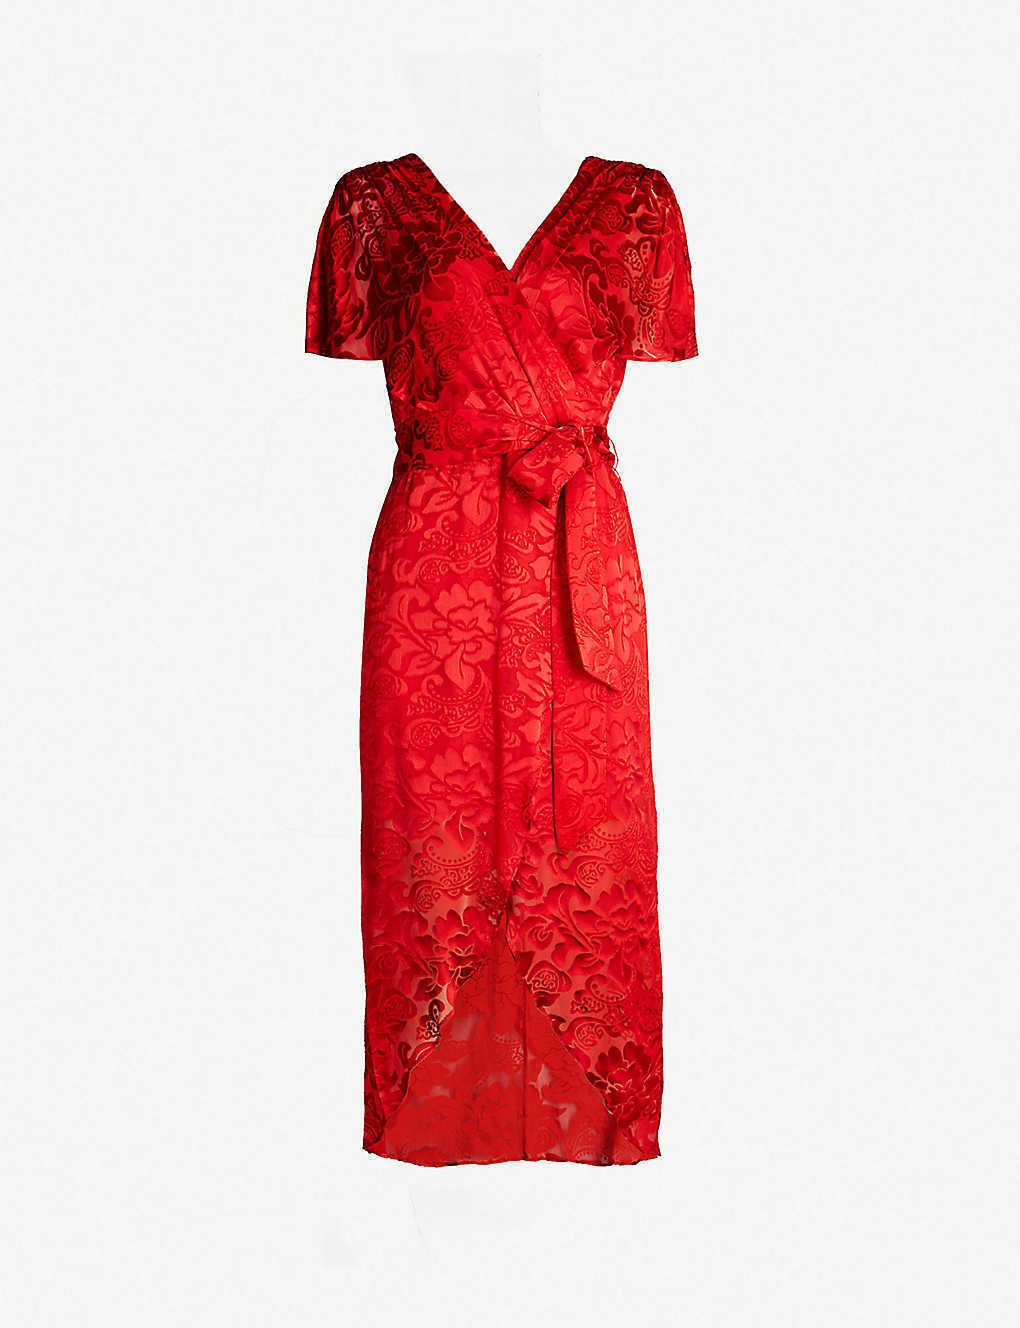 Primary image for New $440 Alice+Olivia Darva Ruby Baroque Floral Burnout Chiffon Wrap Dress SZ 6